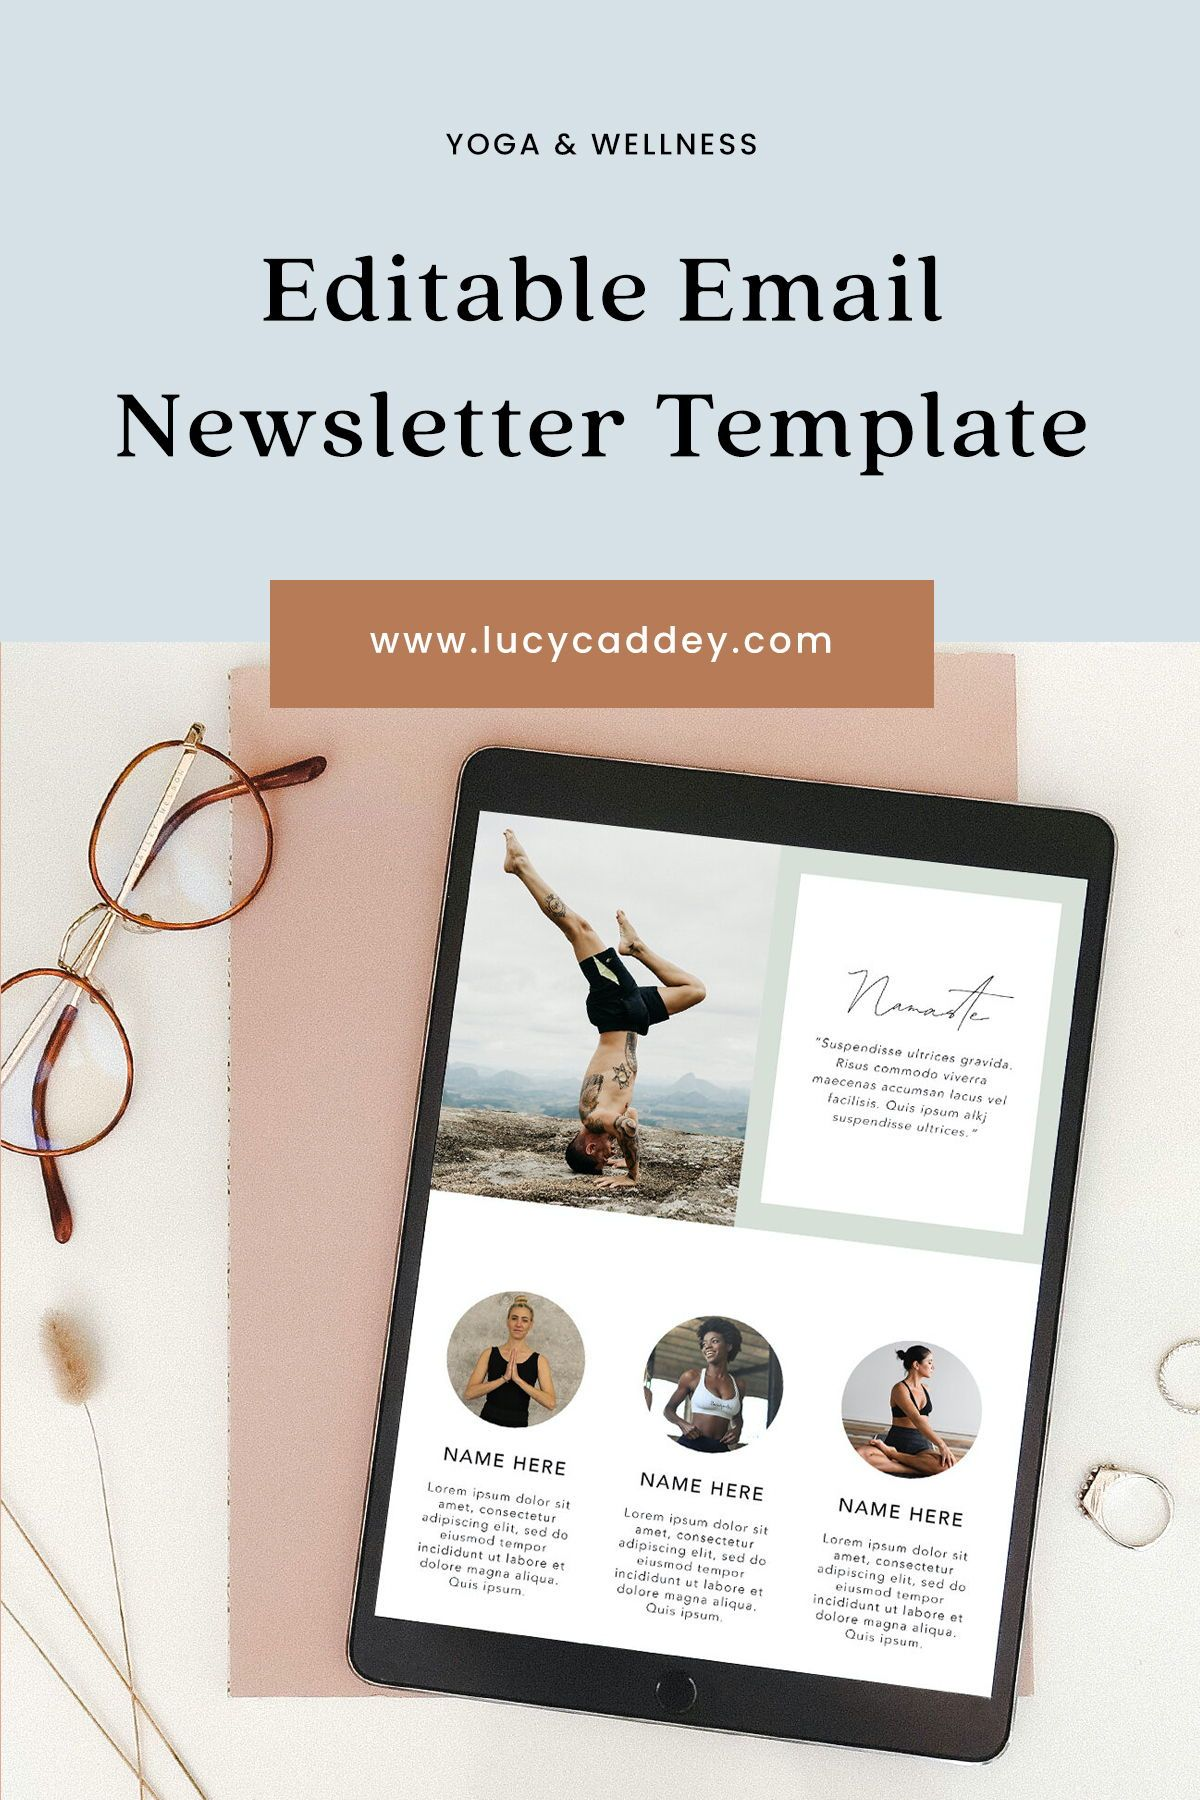 Editable Mailchimp Template Design Tired of your email